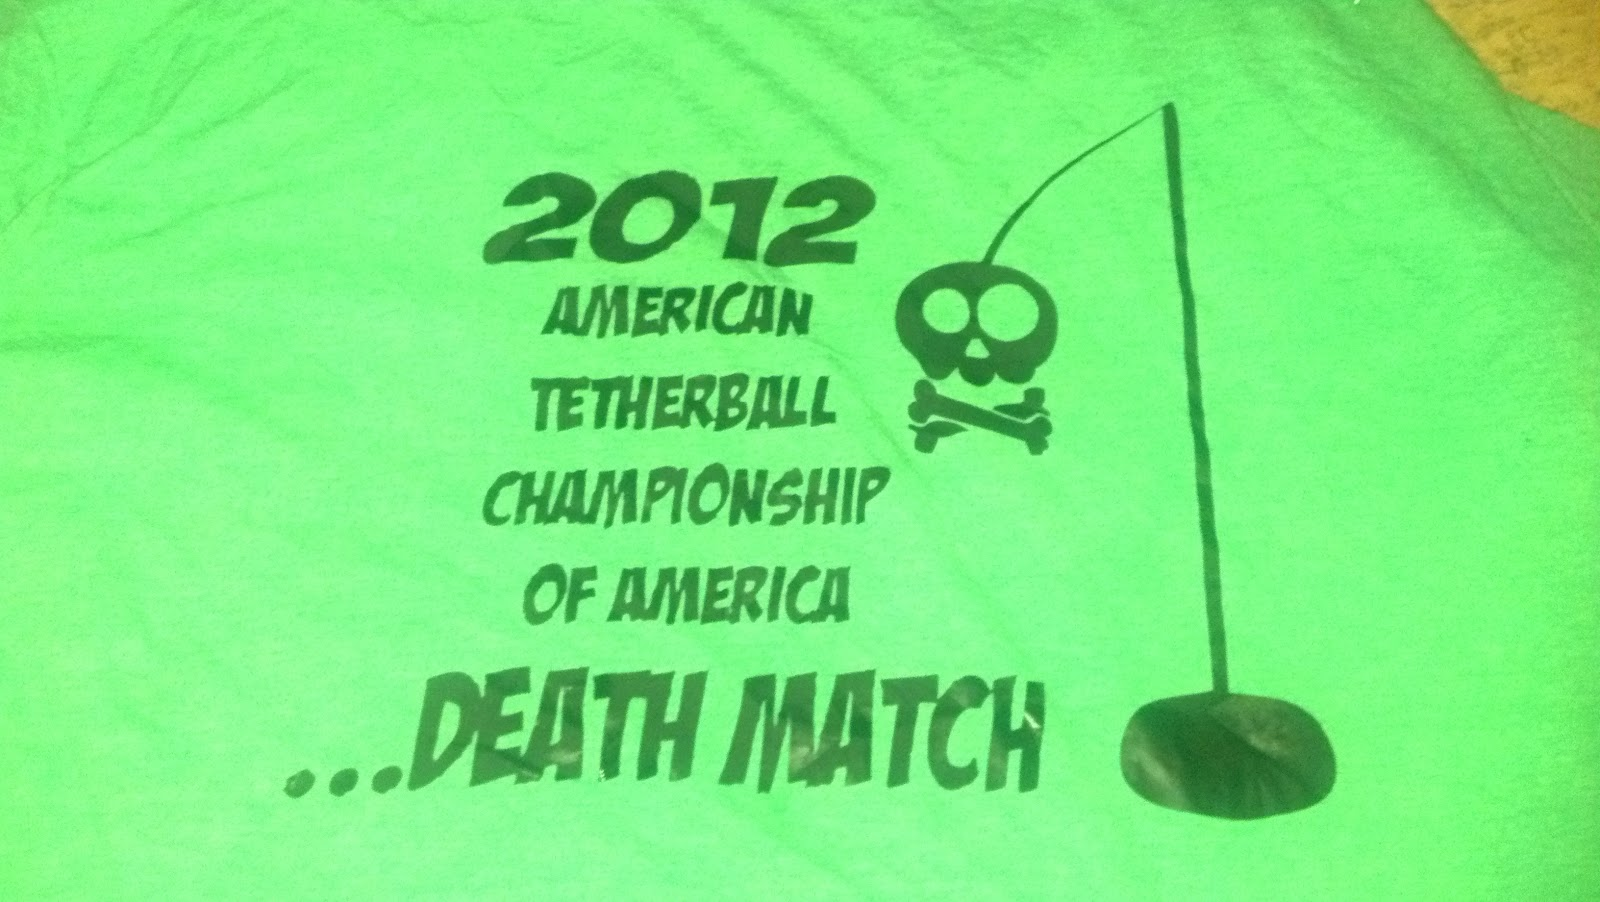 Tether Ball Death Match T-Shirt